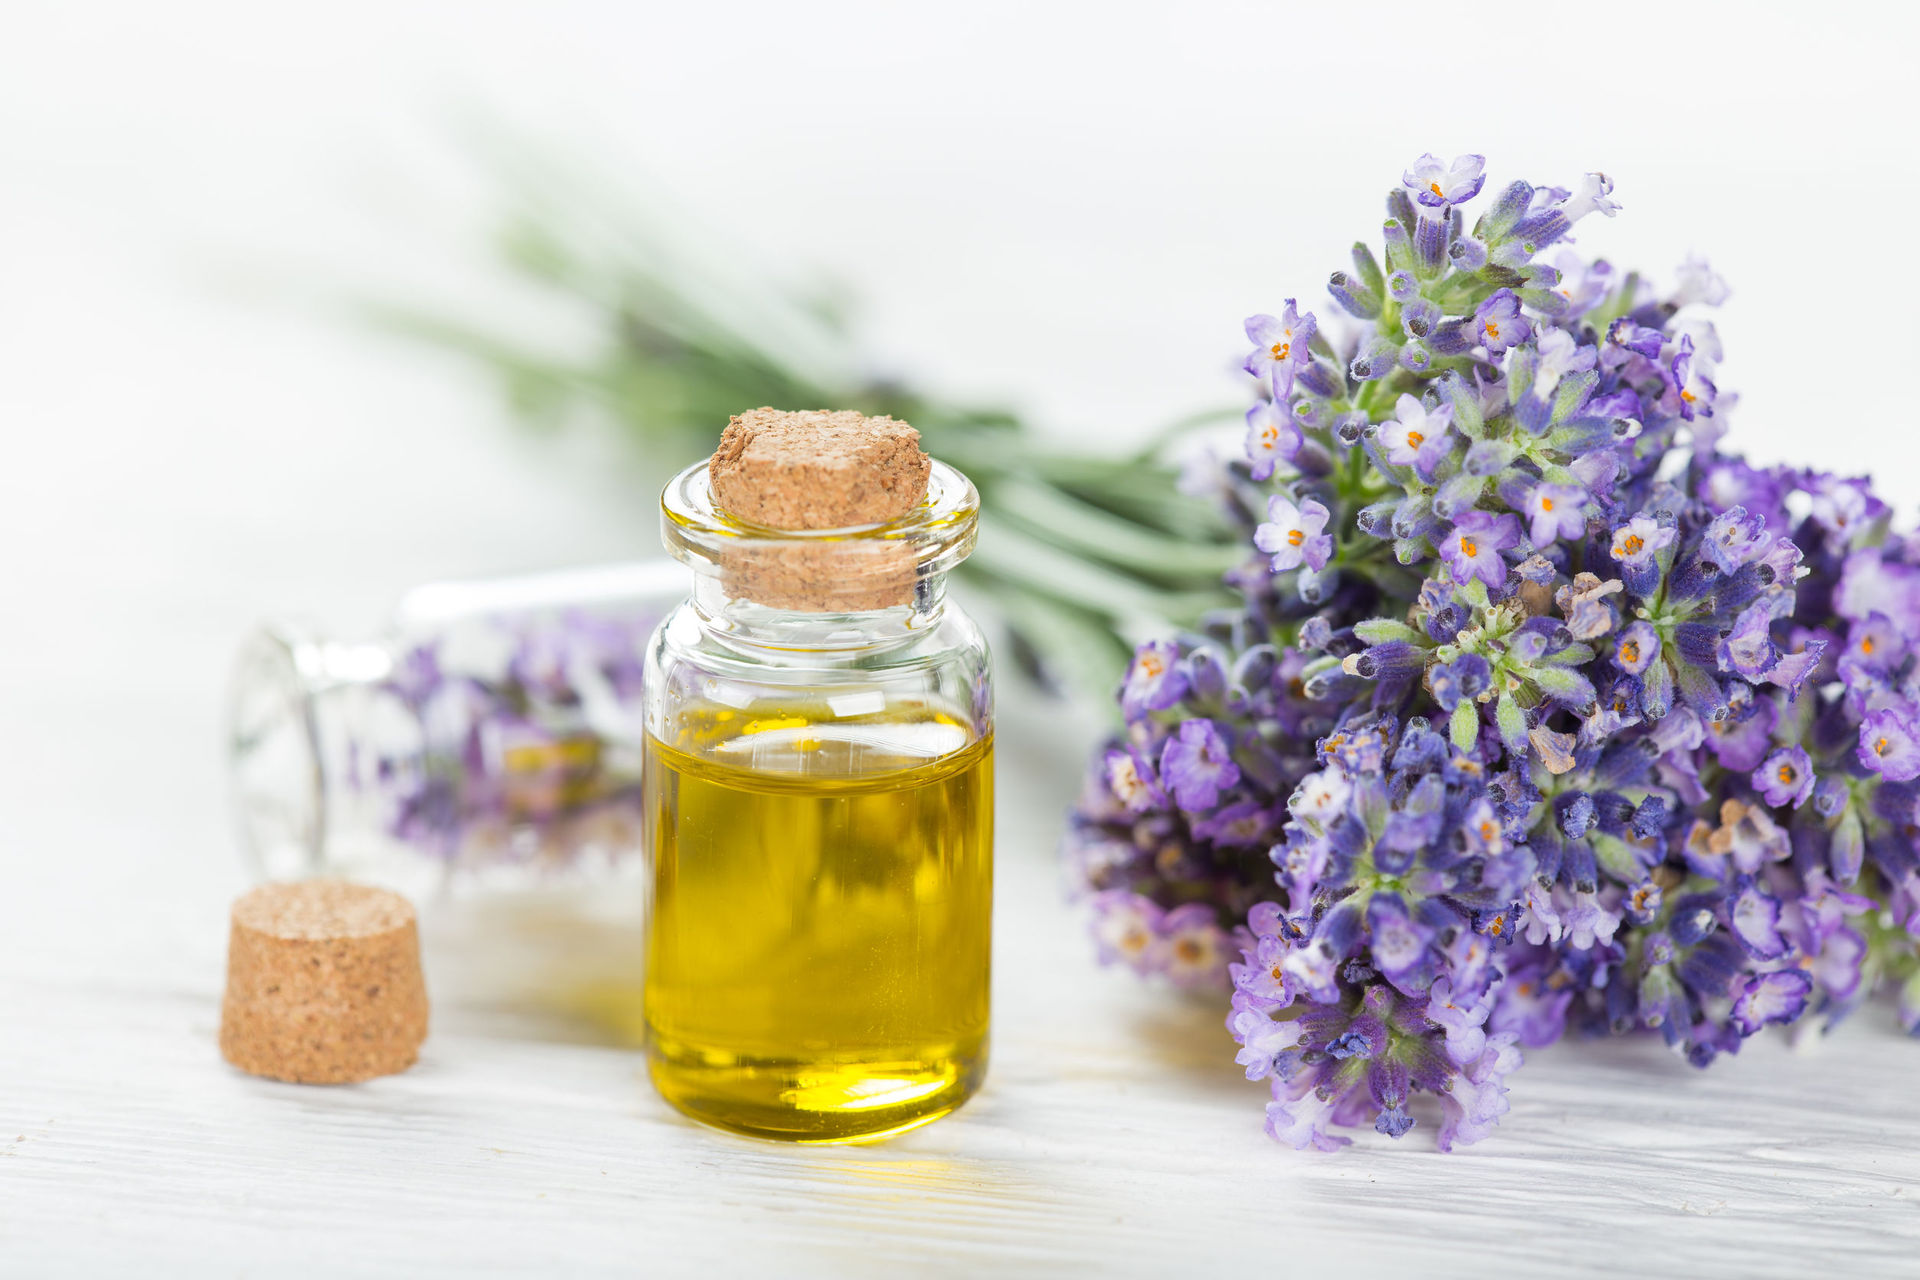 Lavender oil may cause breast growth in children as young as 3